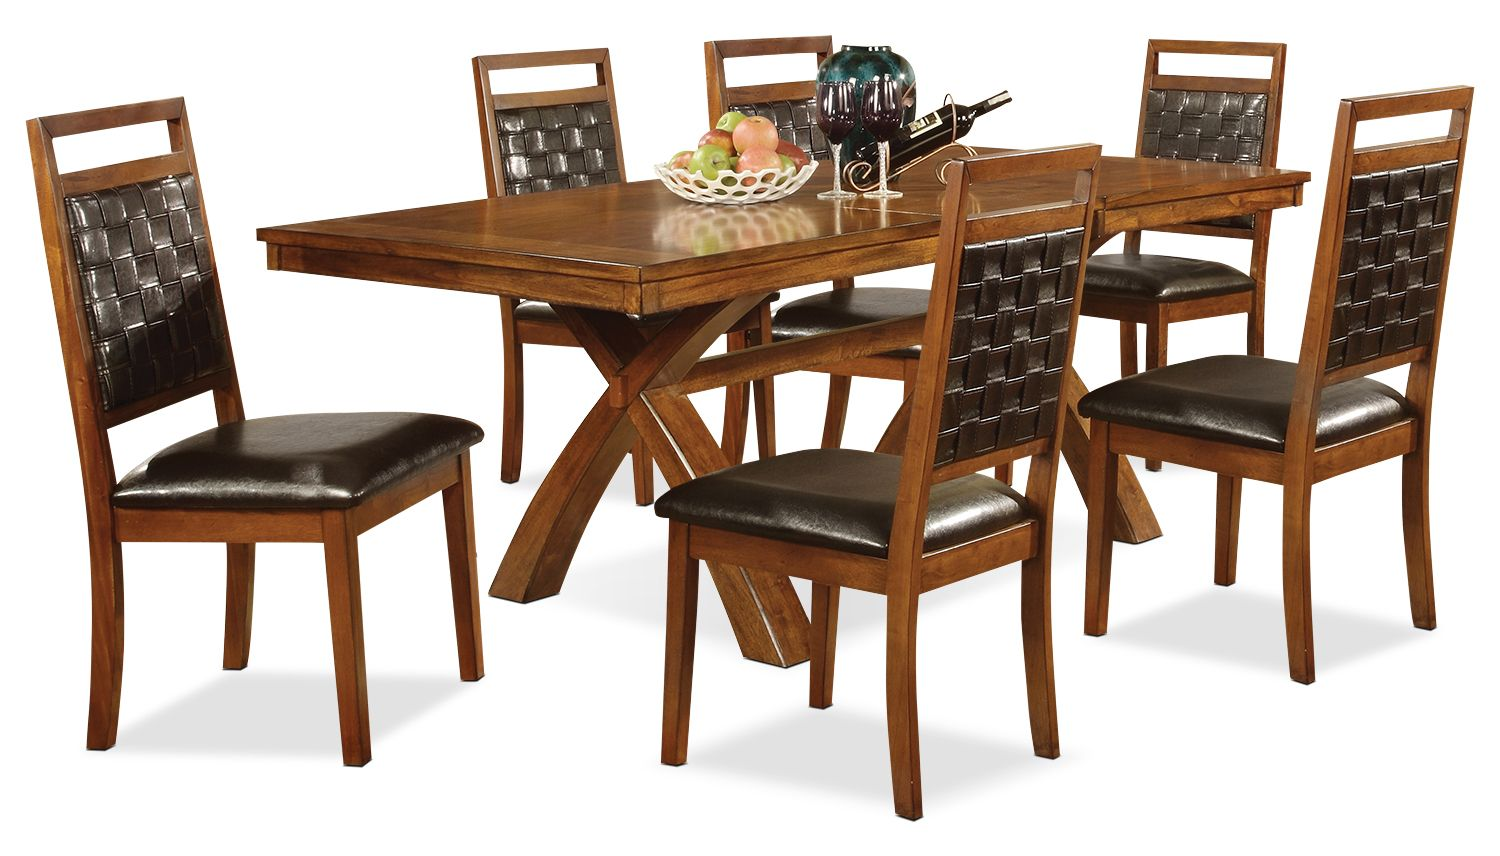 Mindy piece dining package the brick furniture ideas